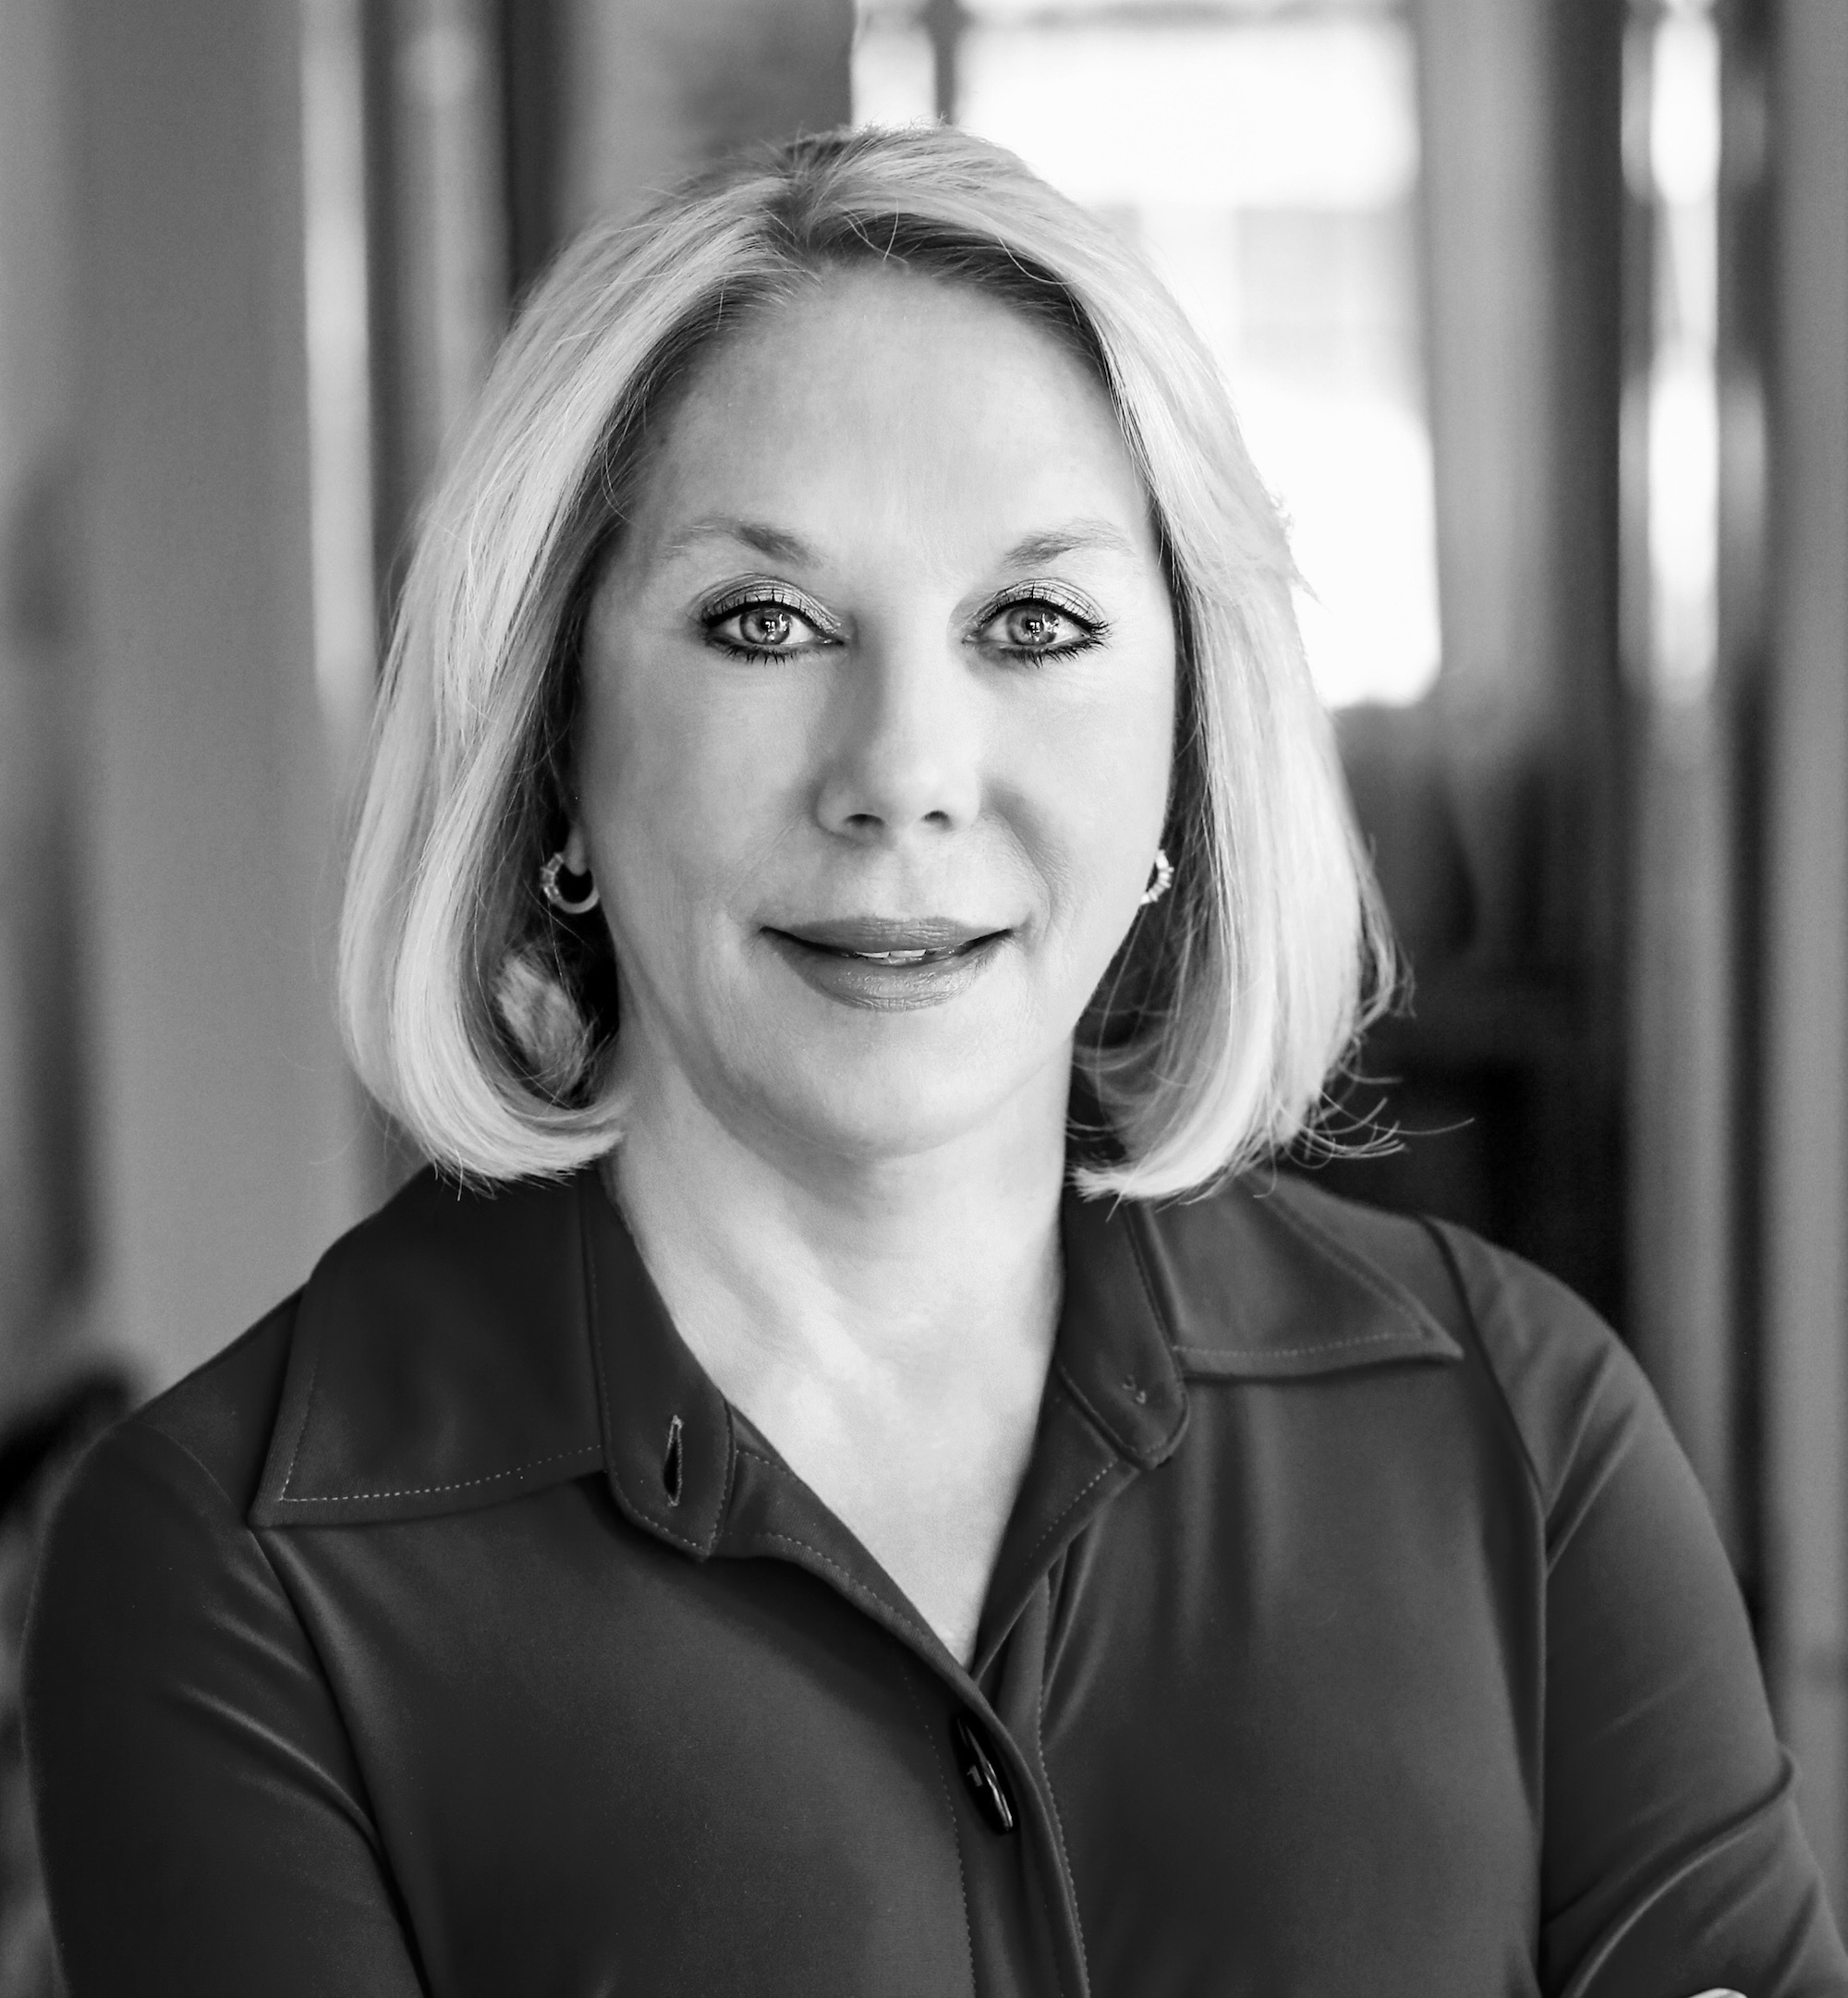 Missy Moscoe   《 Agent 》   Missy has lived in Austin for over 40 years. She has become very familiar with the city and its evolution. Having been involved in the medical area for many years, she has retired and taken up a new vocation in real estate. Missy's strengths are consulting with clients in order to seek out the best home and getting the best property within their budget.   She is a grandmother to three and enjoys all the duties which go along with that, as well as traveling with her husband of 35 years.